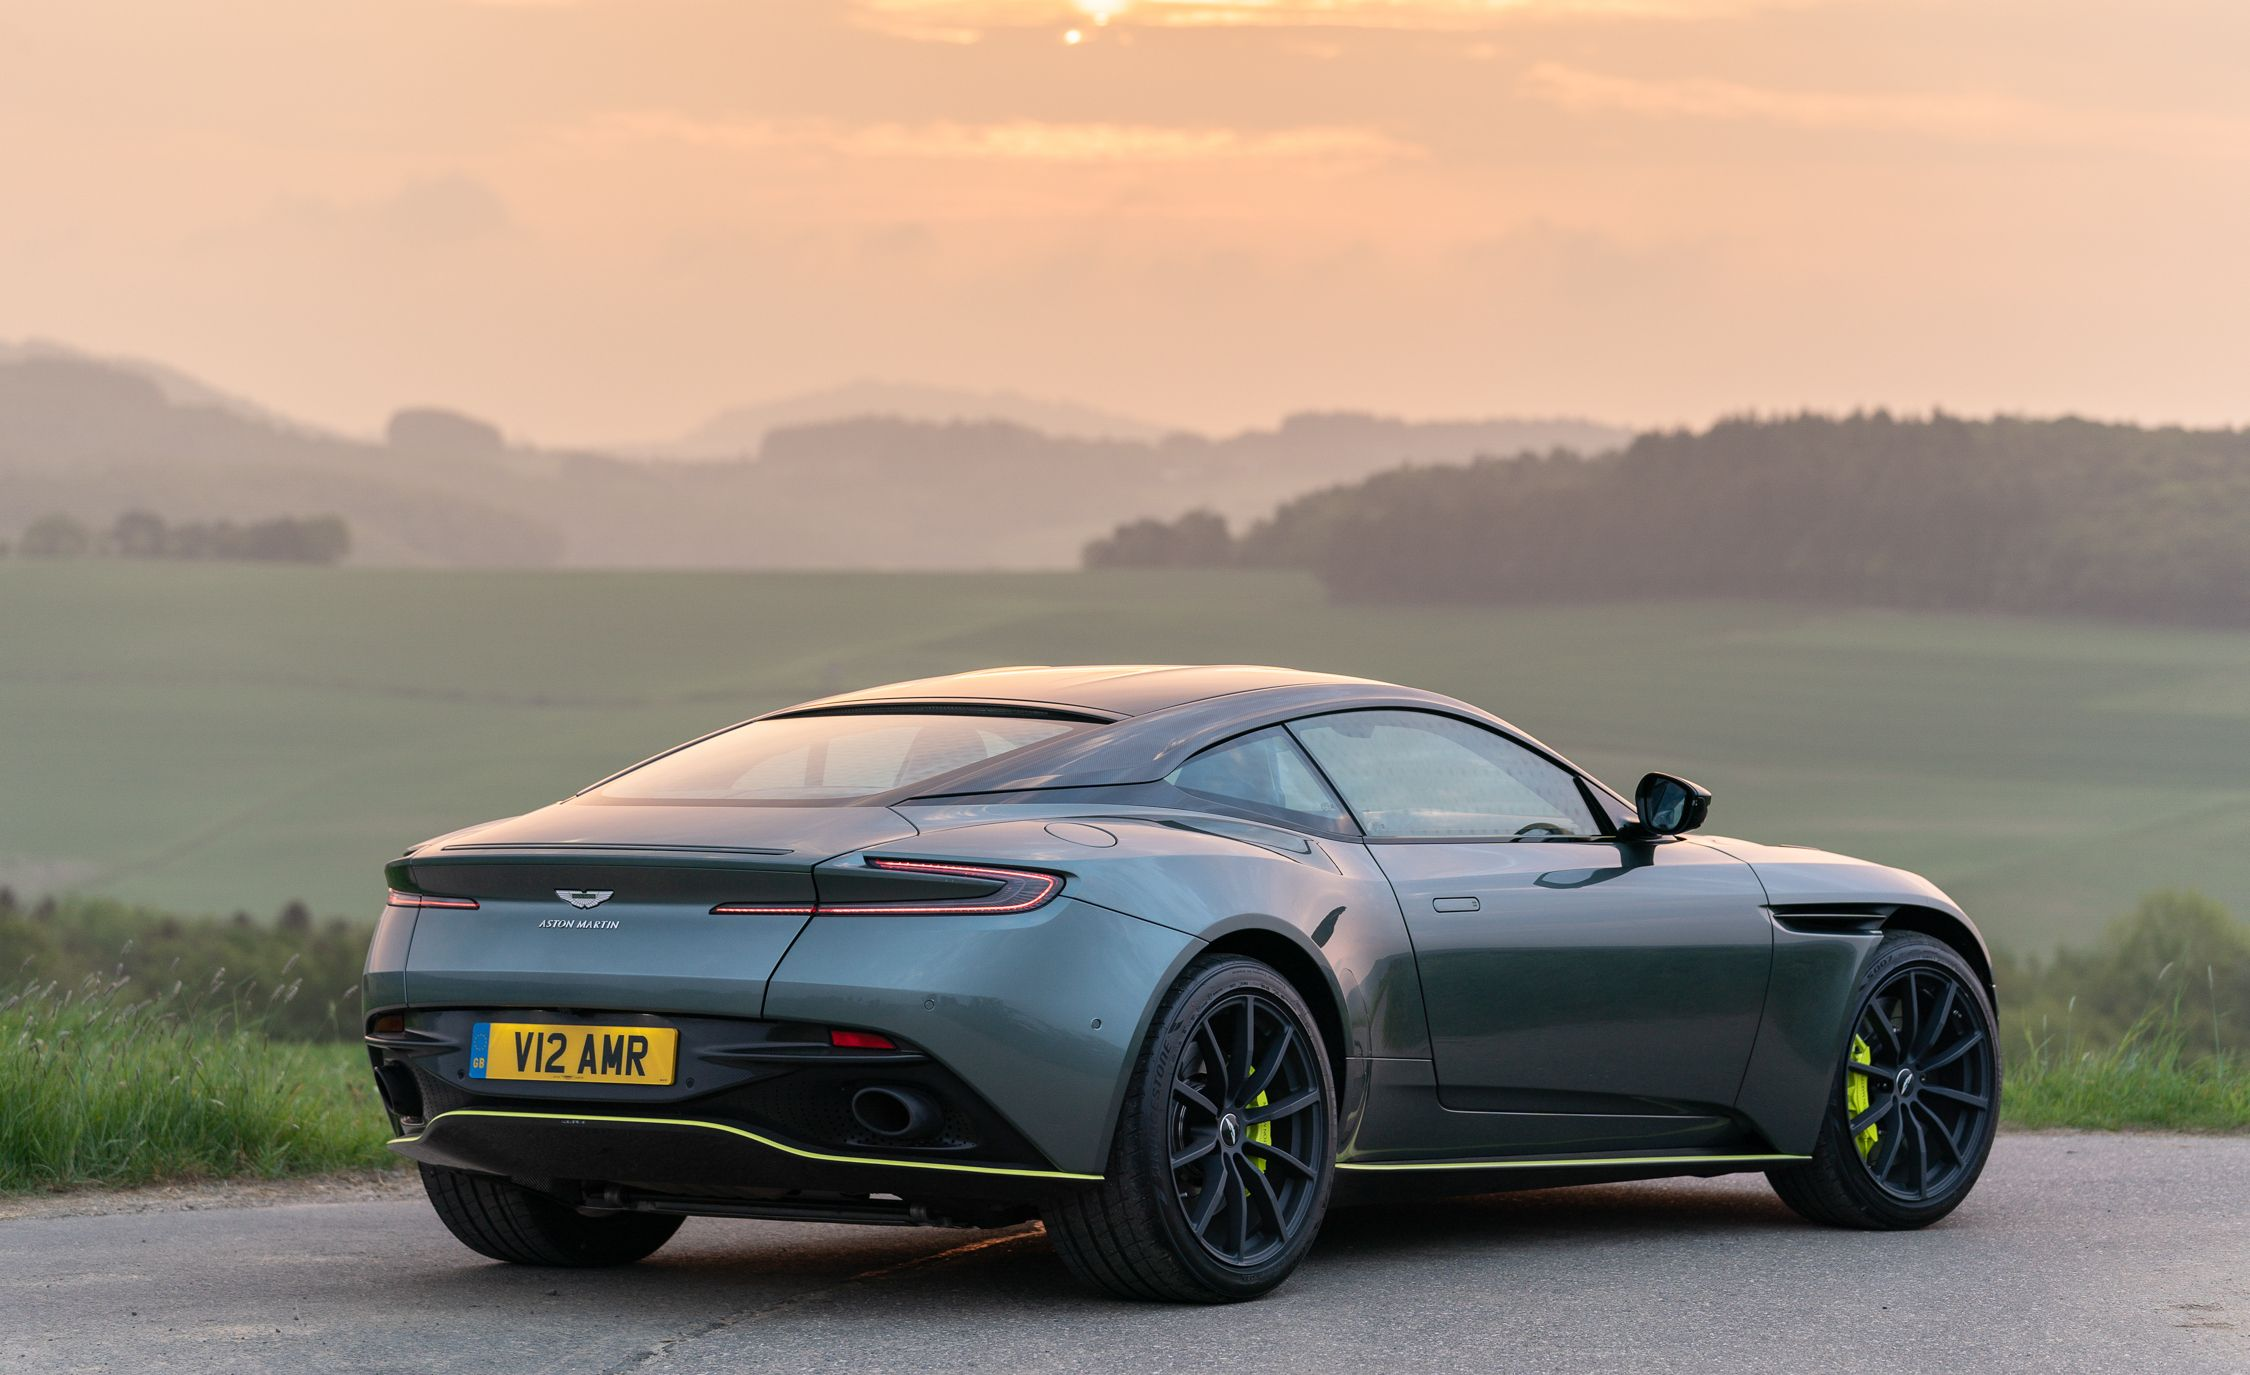 2019-aston-martin-db11-amr-109-1527258471 Interesting Info About aston Martin Db9 Price with Gorgeous Gallery Cars Review